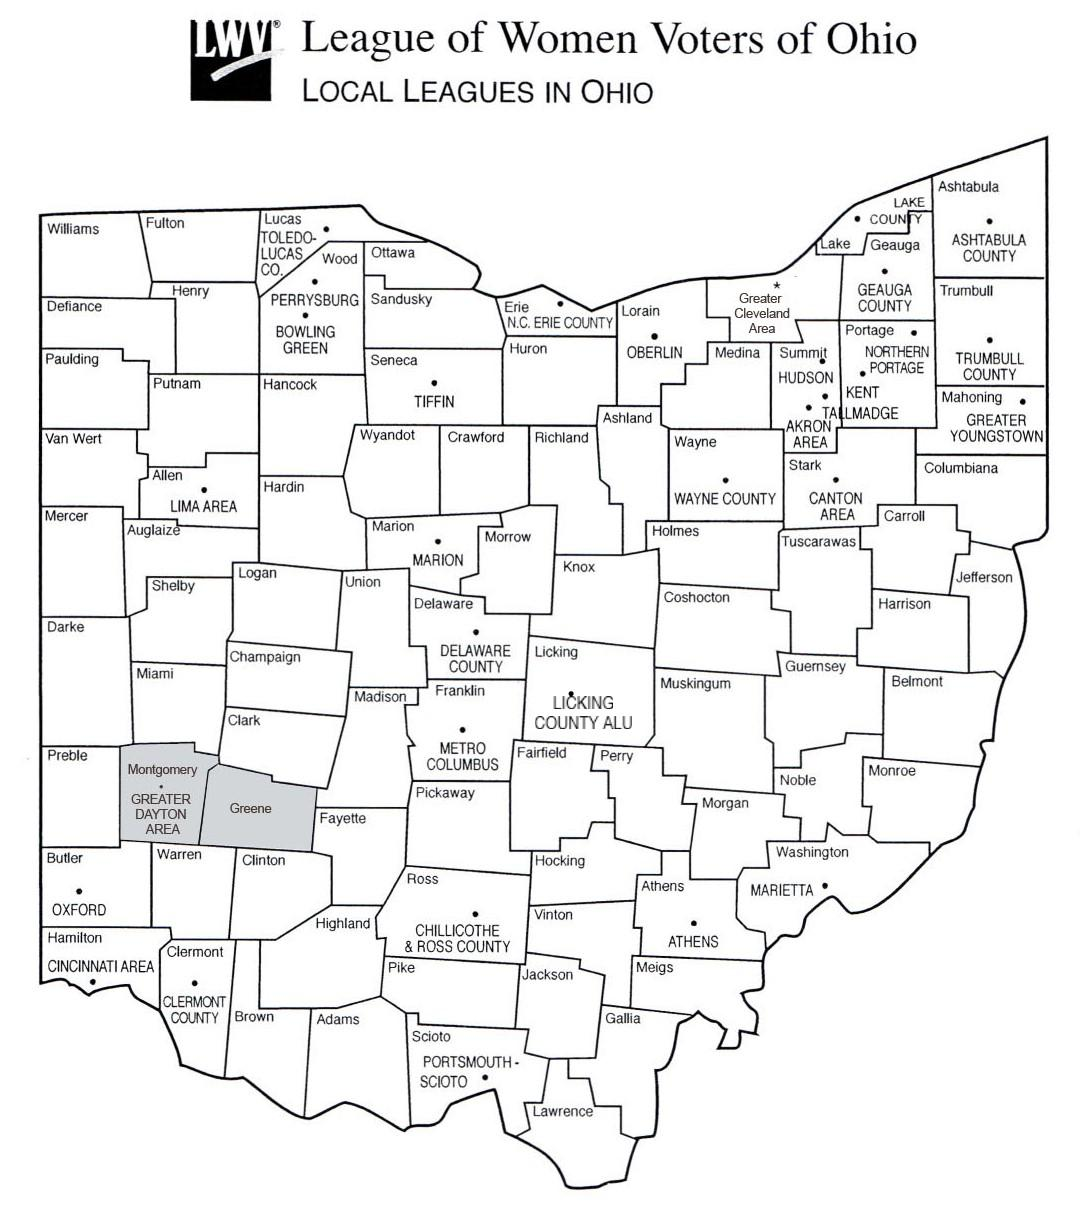 Map of Local Leagues in Ohio